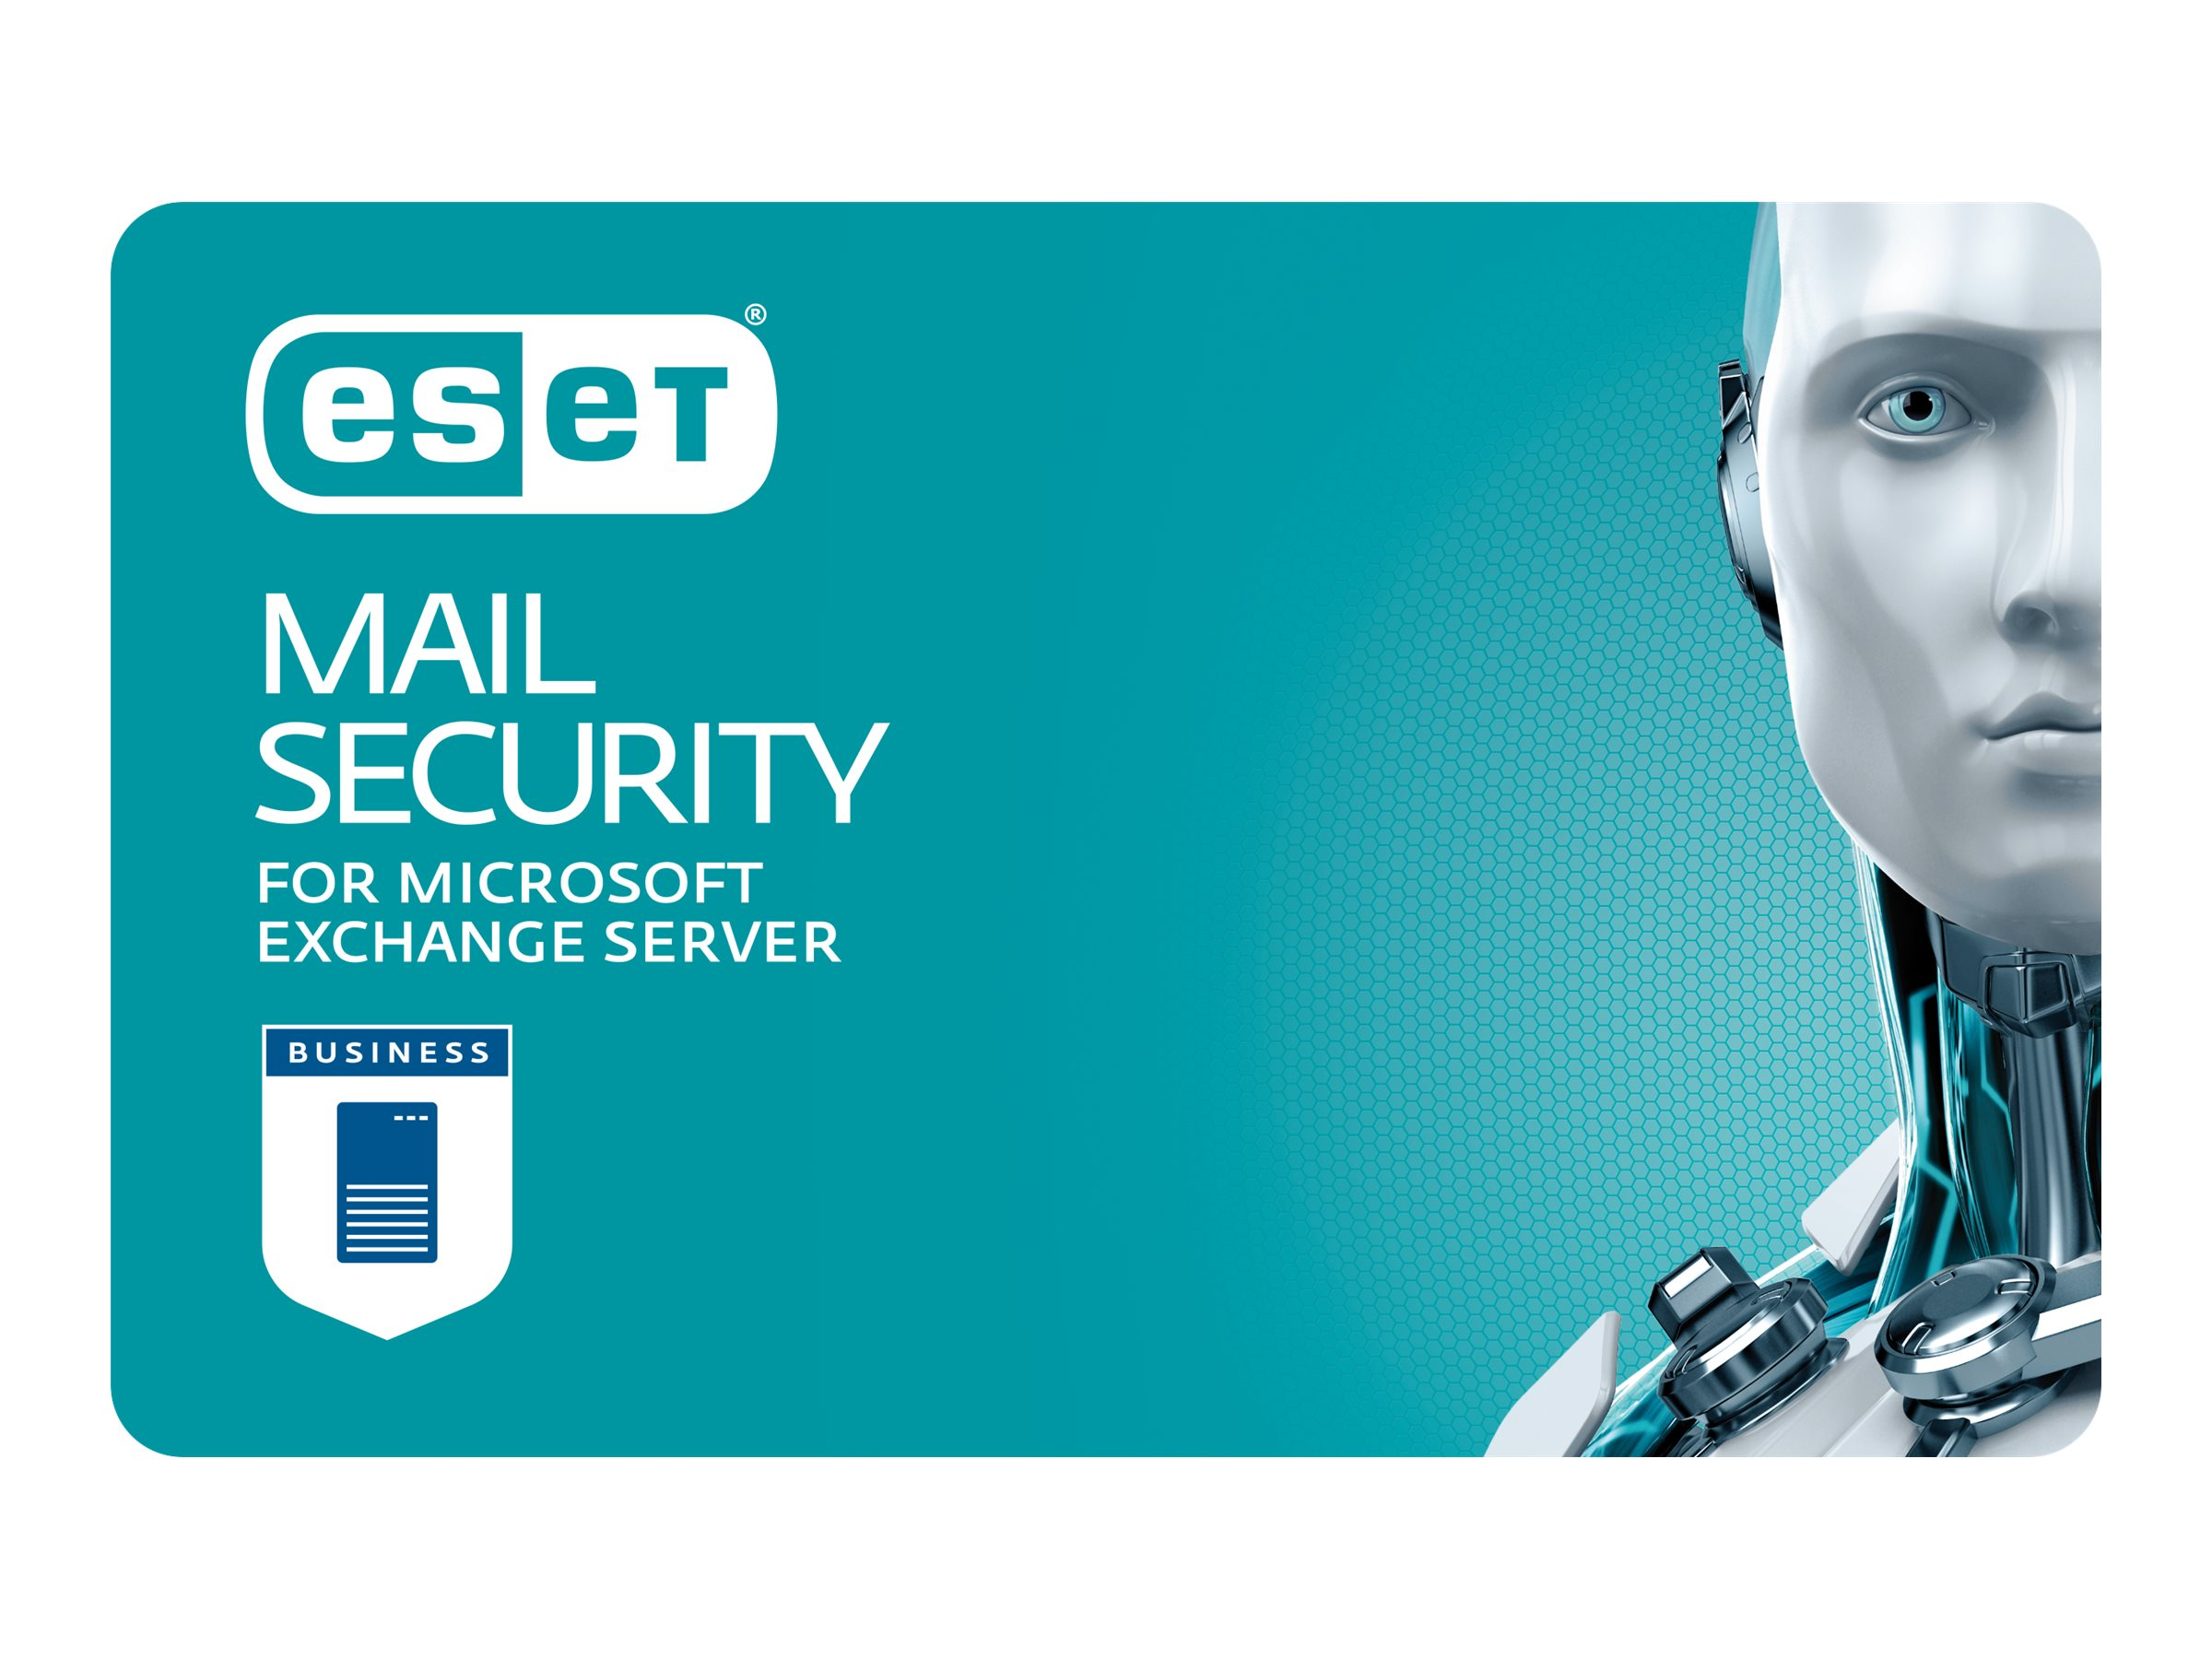 ESET Mail Security For Microsoft Exchange Server - Abonnement-Lizenz (2 Jahre) - 1 Benutzer - Volumen - 250-499 Lizenzen - Win